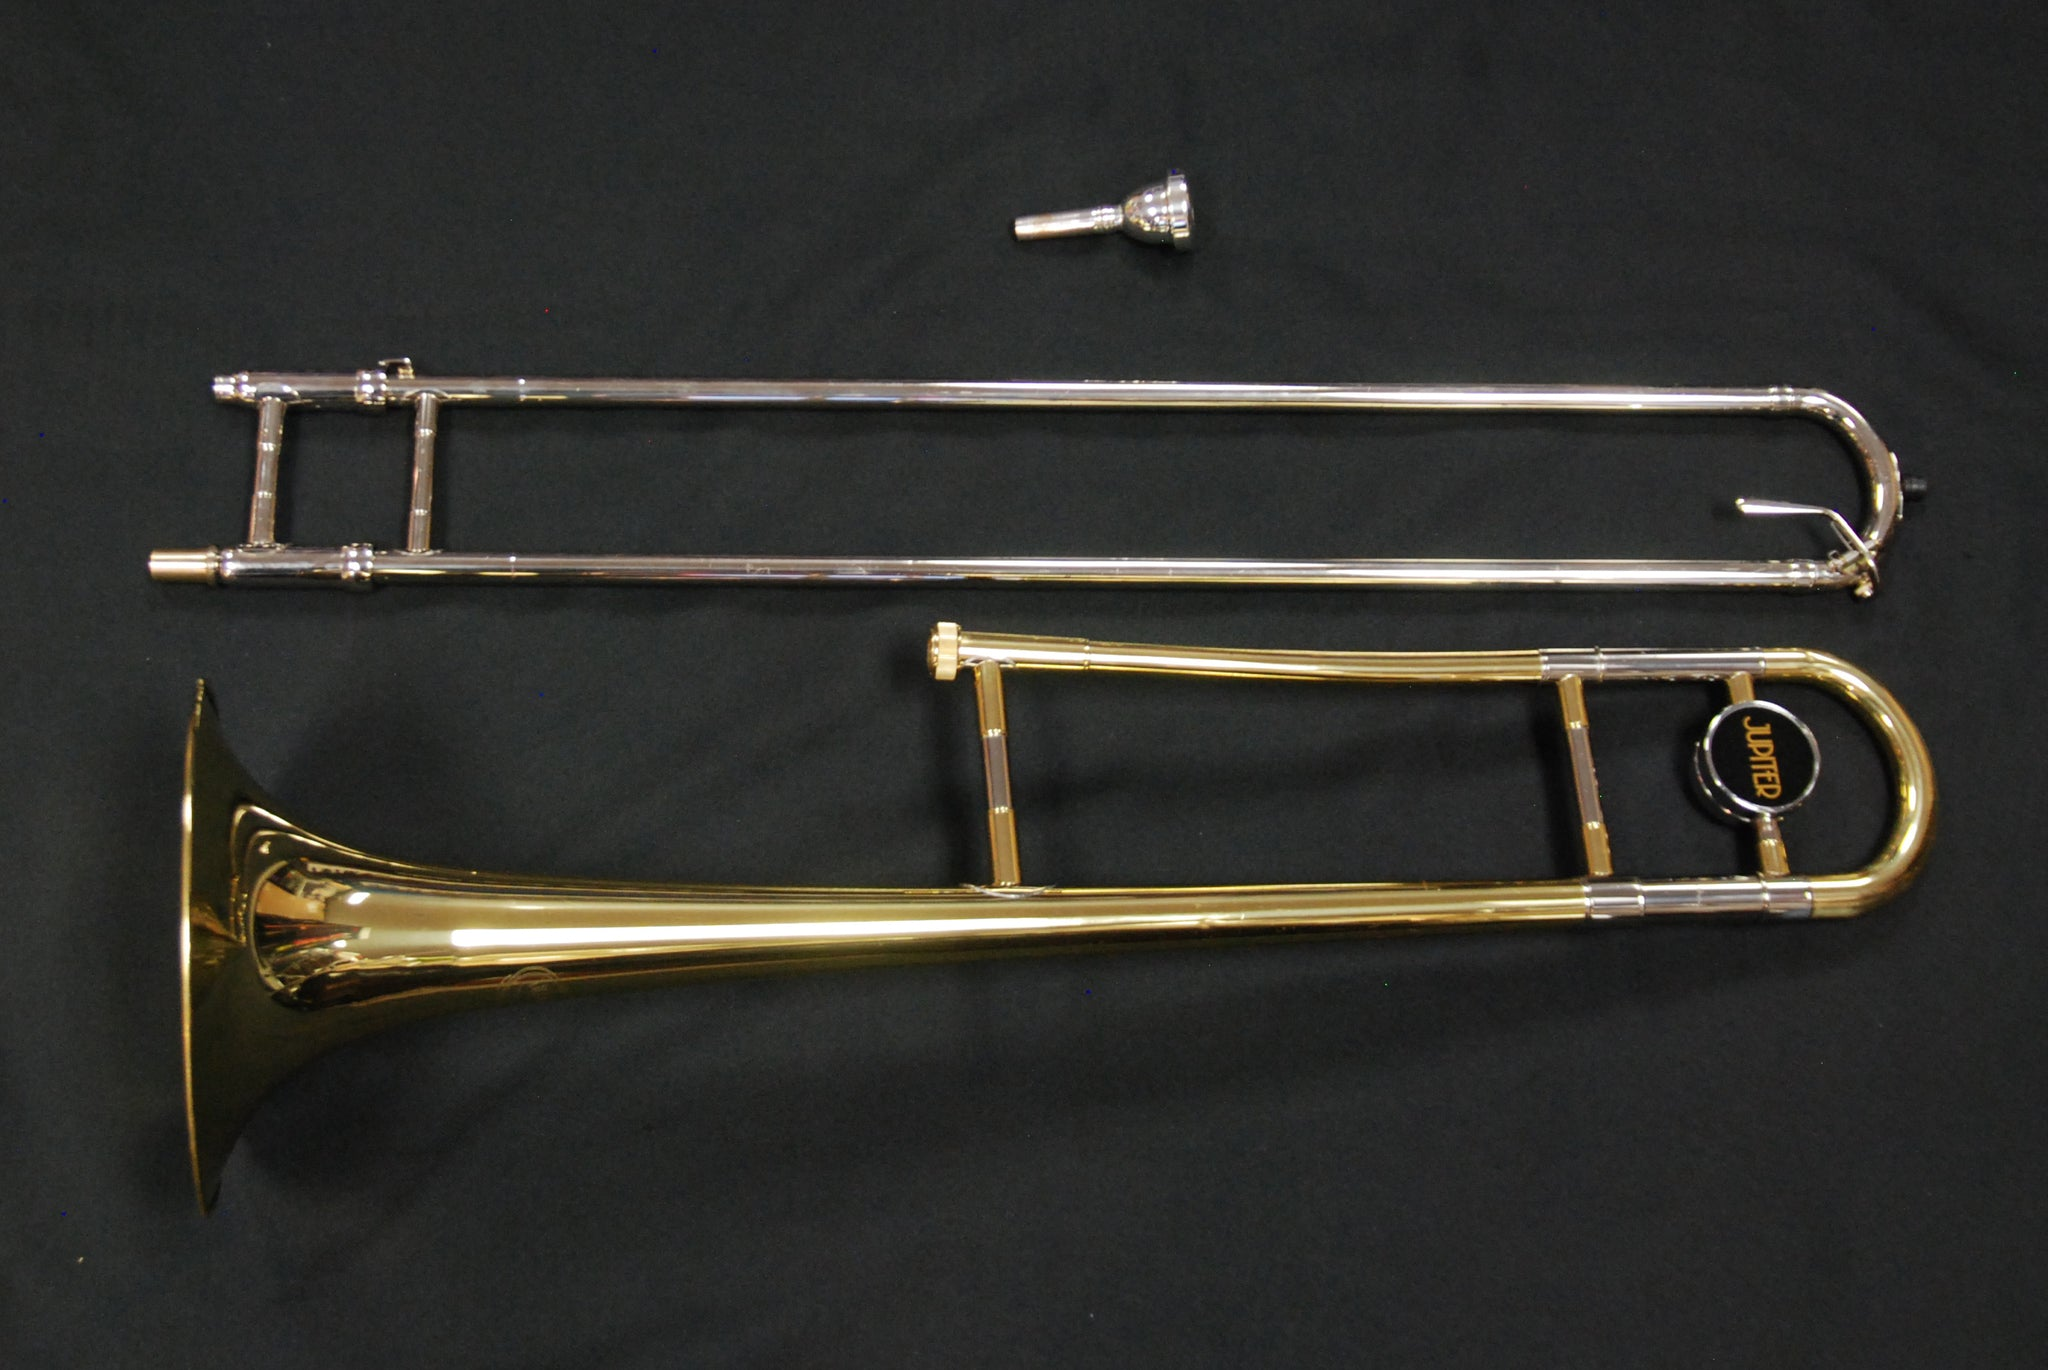 Shop online for Jupiter JSL-432 Trombone [42436] today. Now available for purchase from Midlothian Music of Orland Park, Illinois, USA